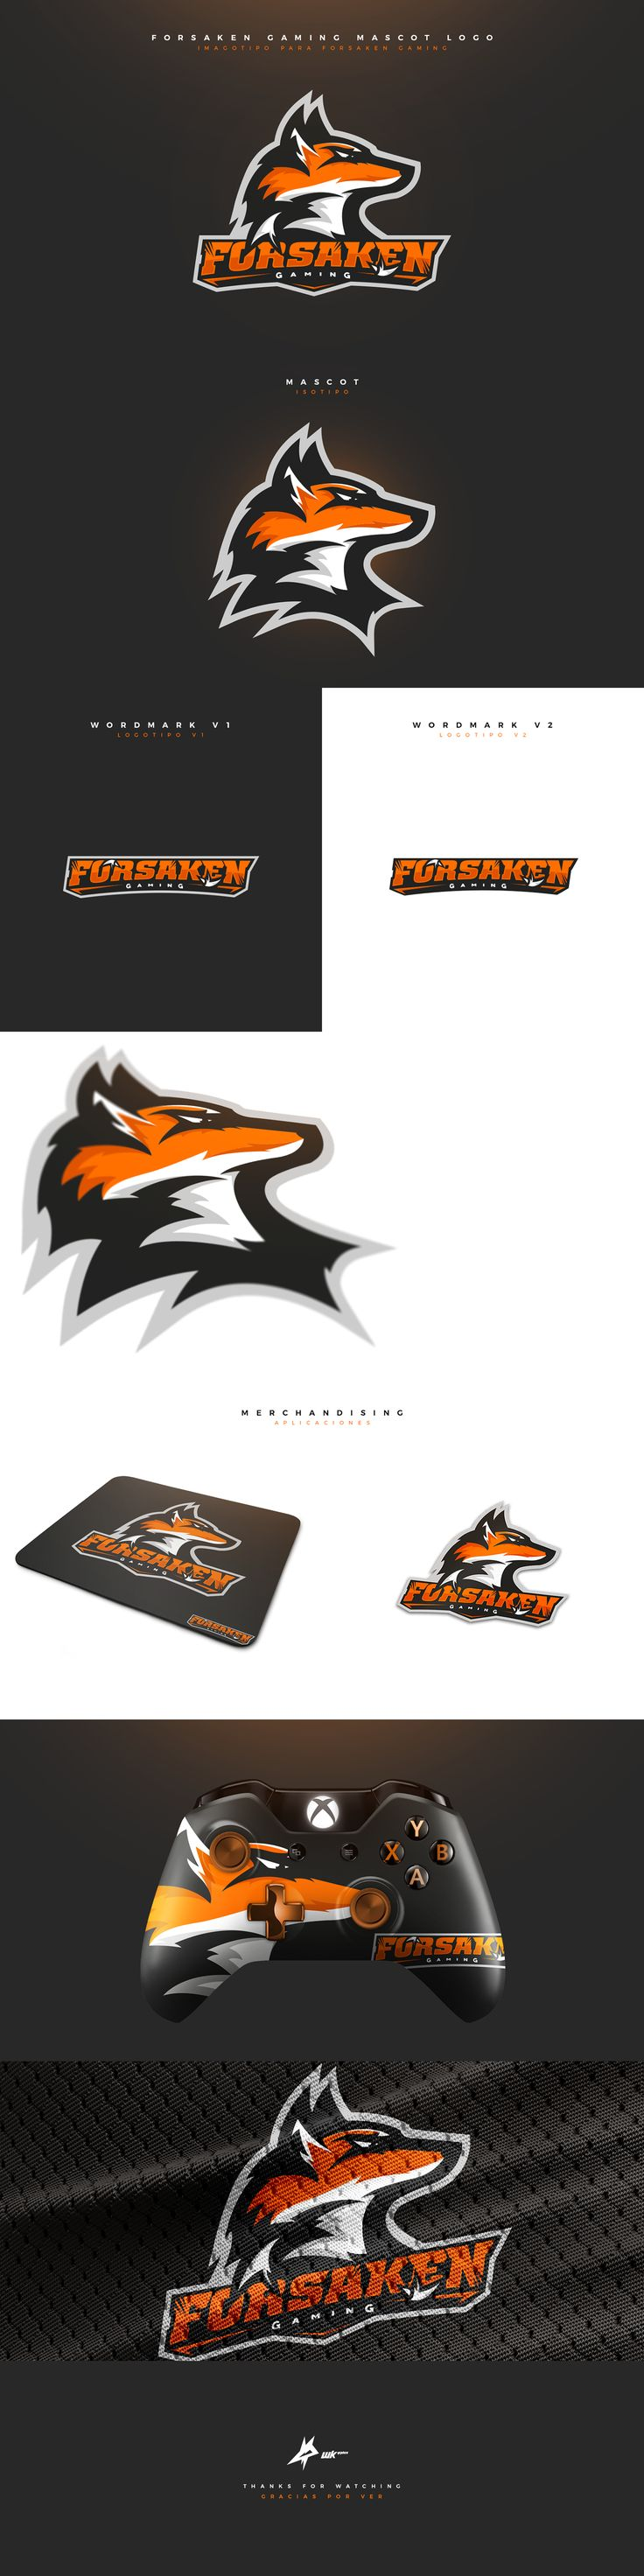 "Check out my @Behance project: ""Forsaken Gaming Mascot Logo."" https://www.behance.net/gallery/47138353/Forsaken-Gaming-Mascot-Logo #mascot #logo #esports #sports #branding #brand #fox #gaming #mascotlogo"